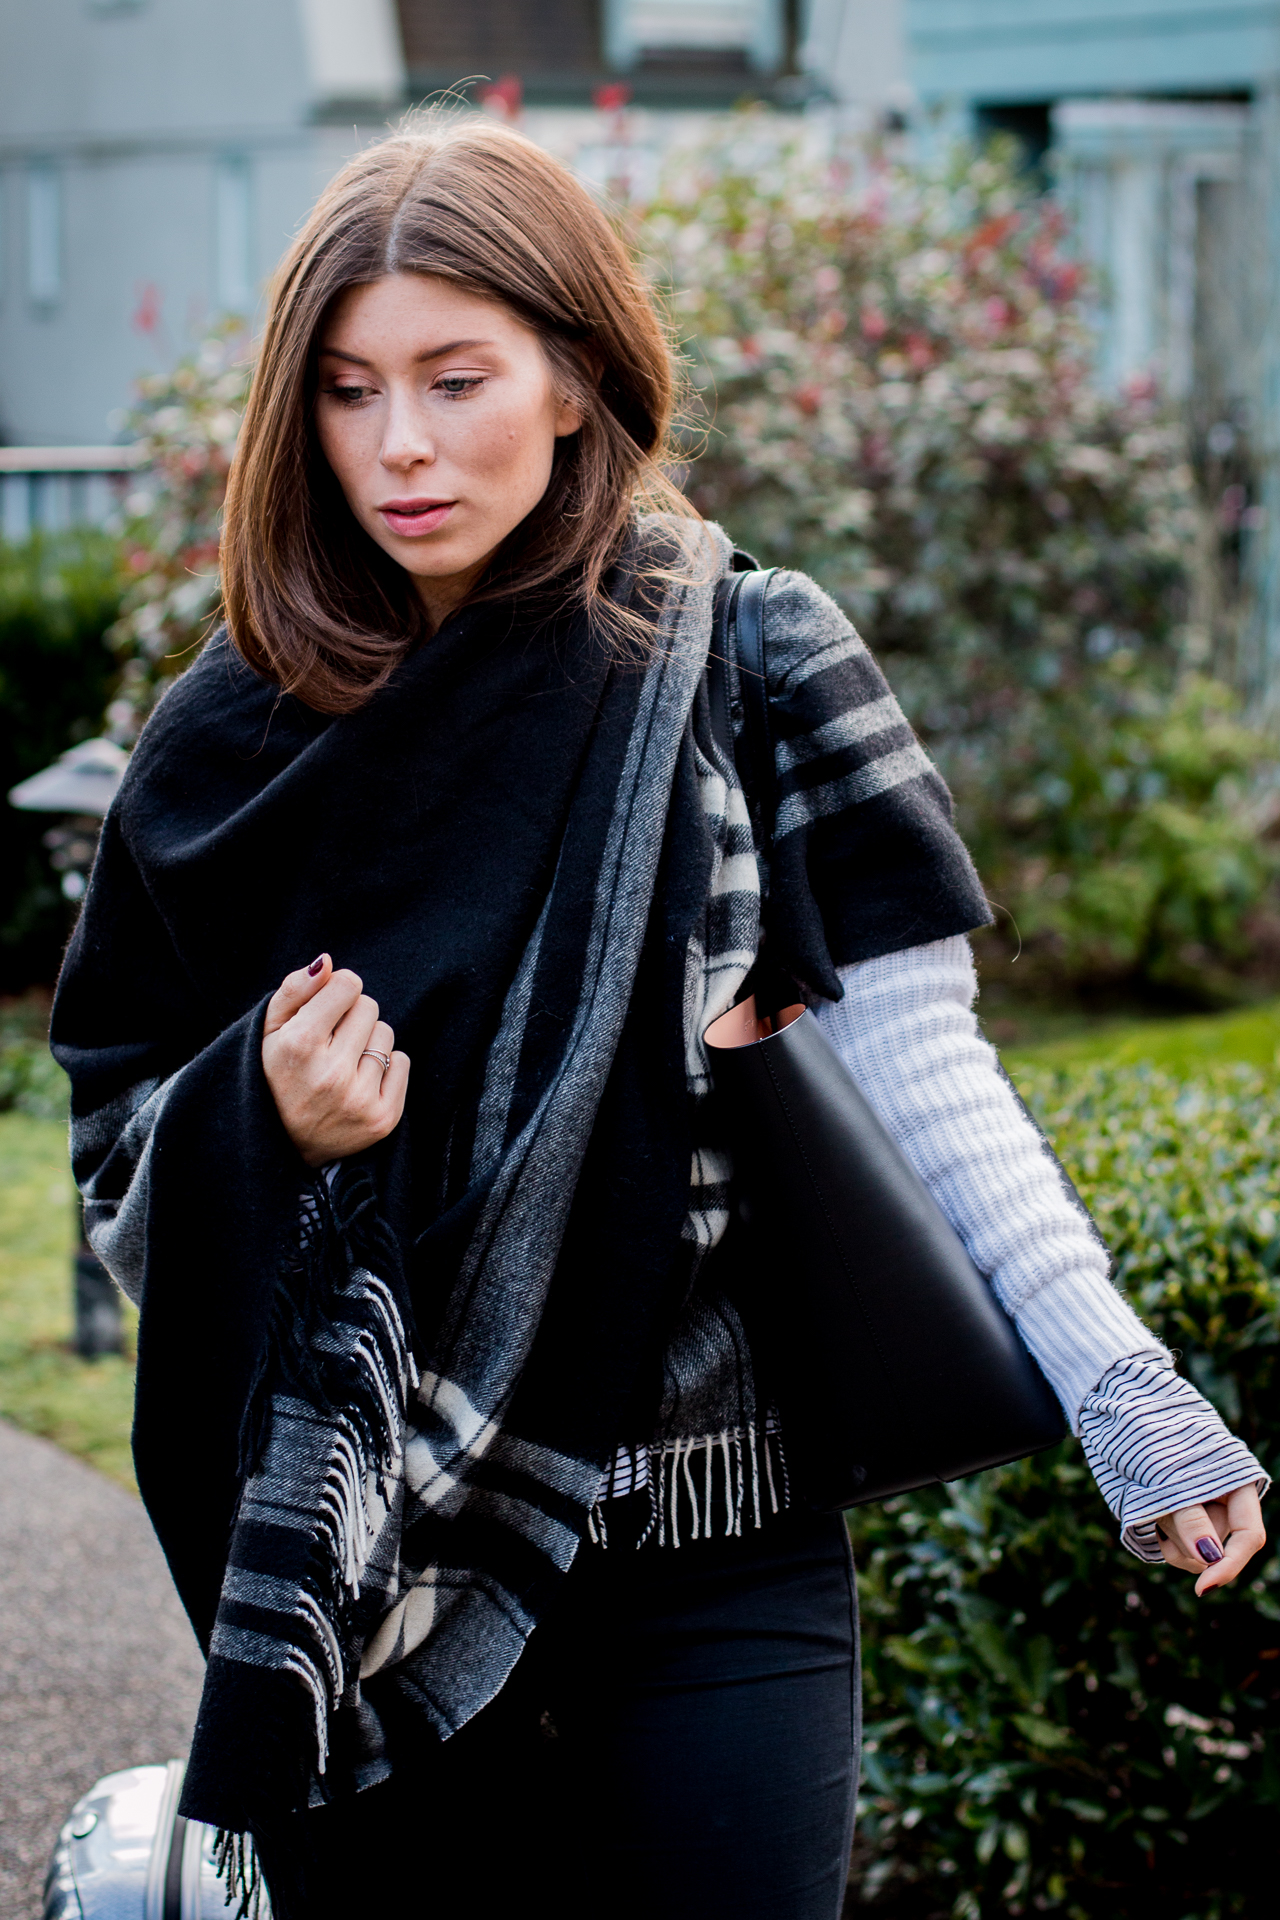 OUTFIT: black shopper tote